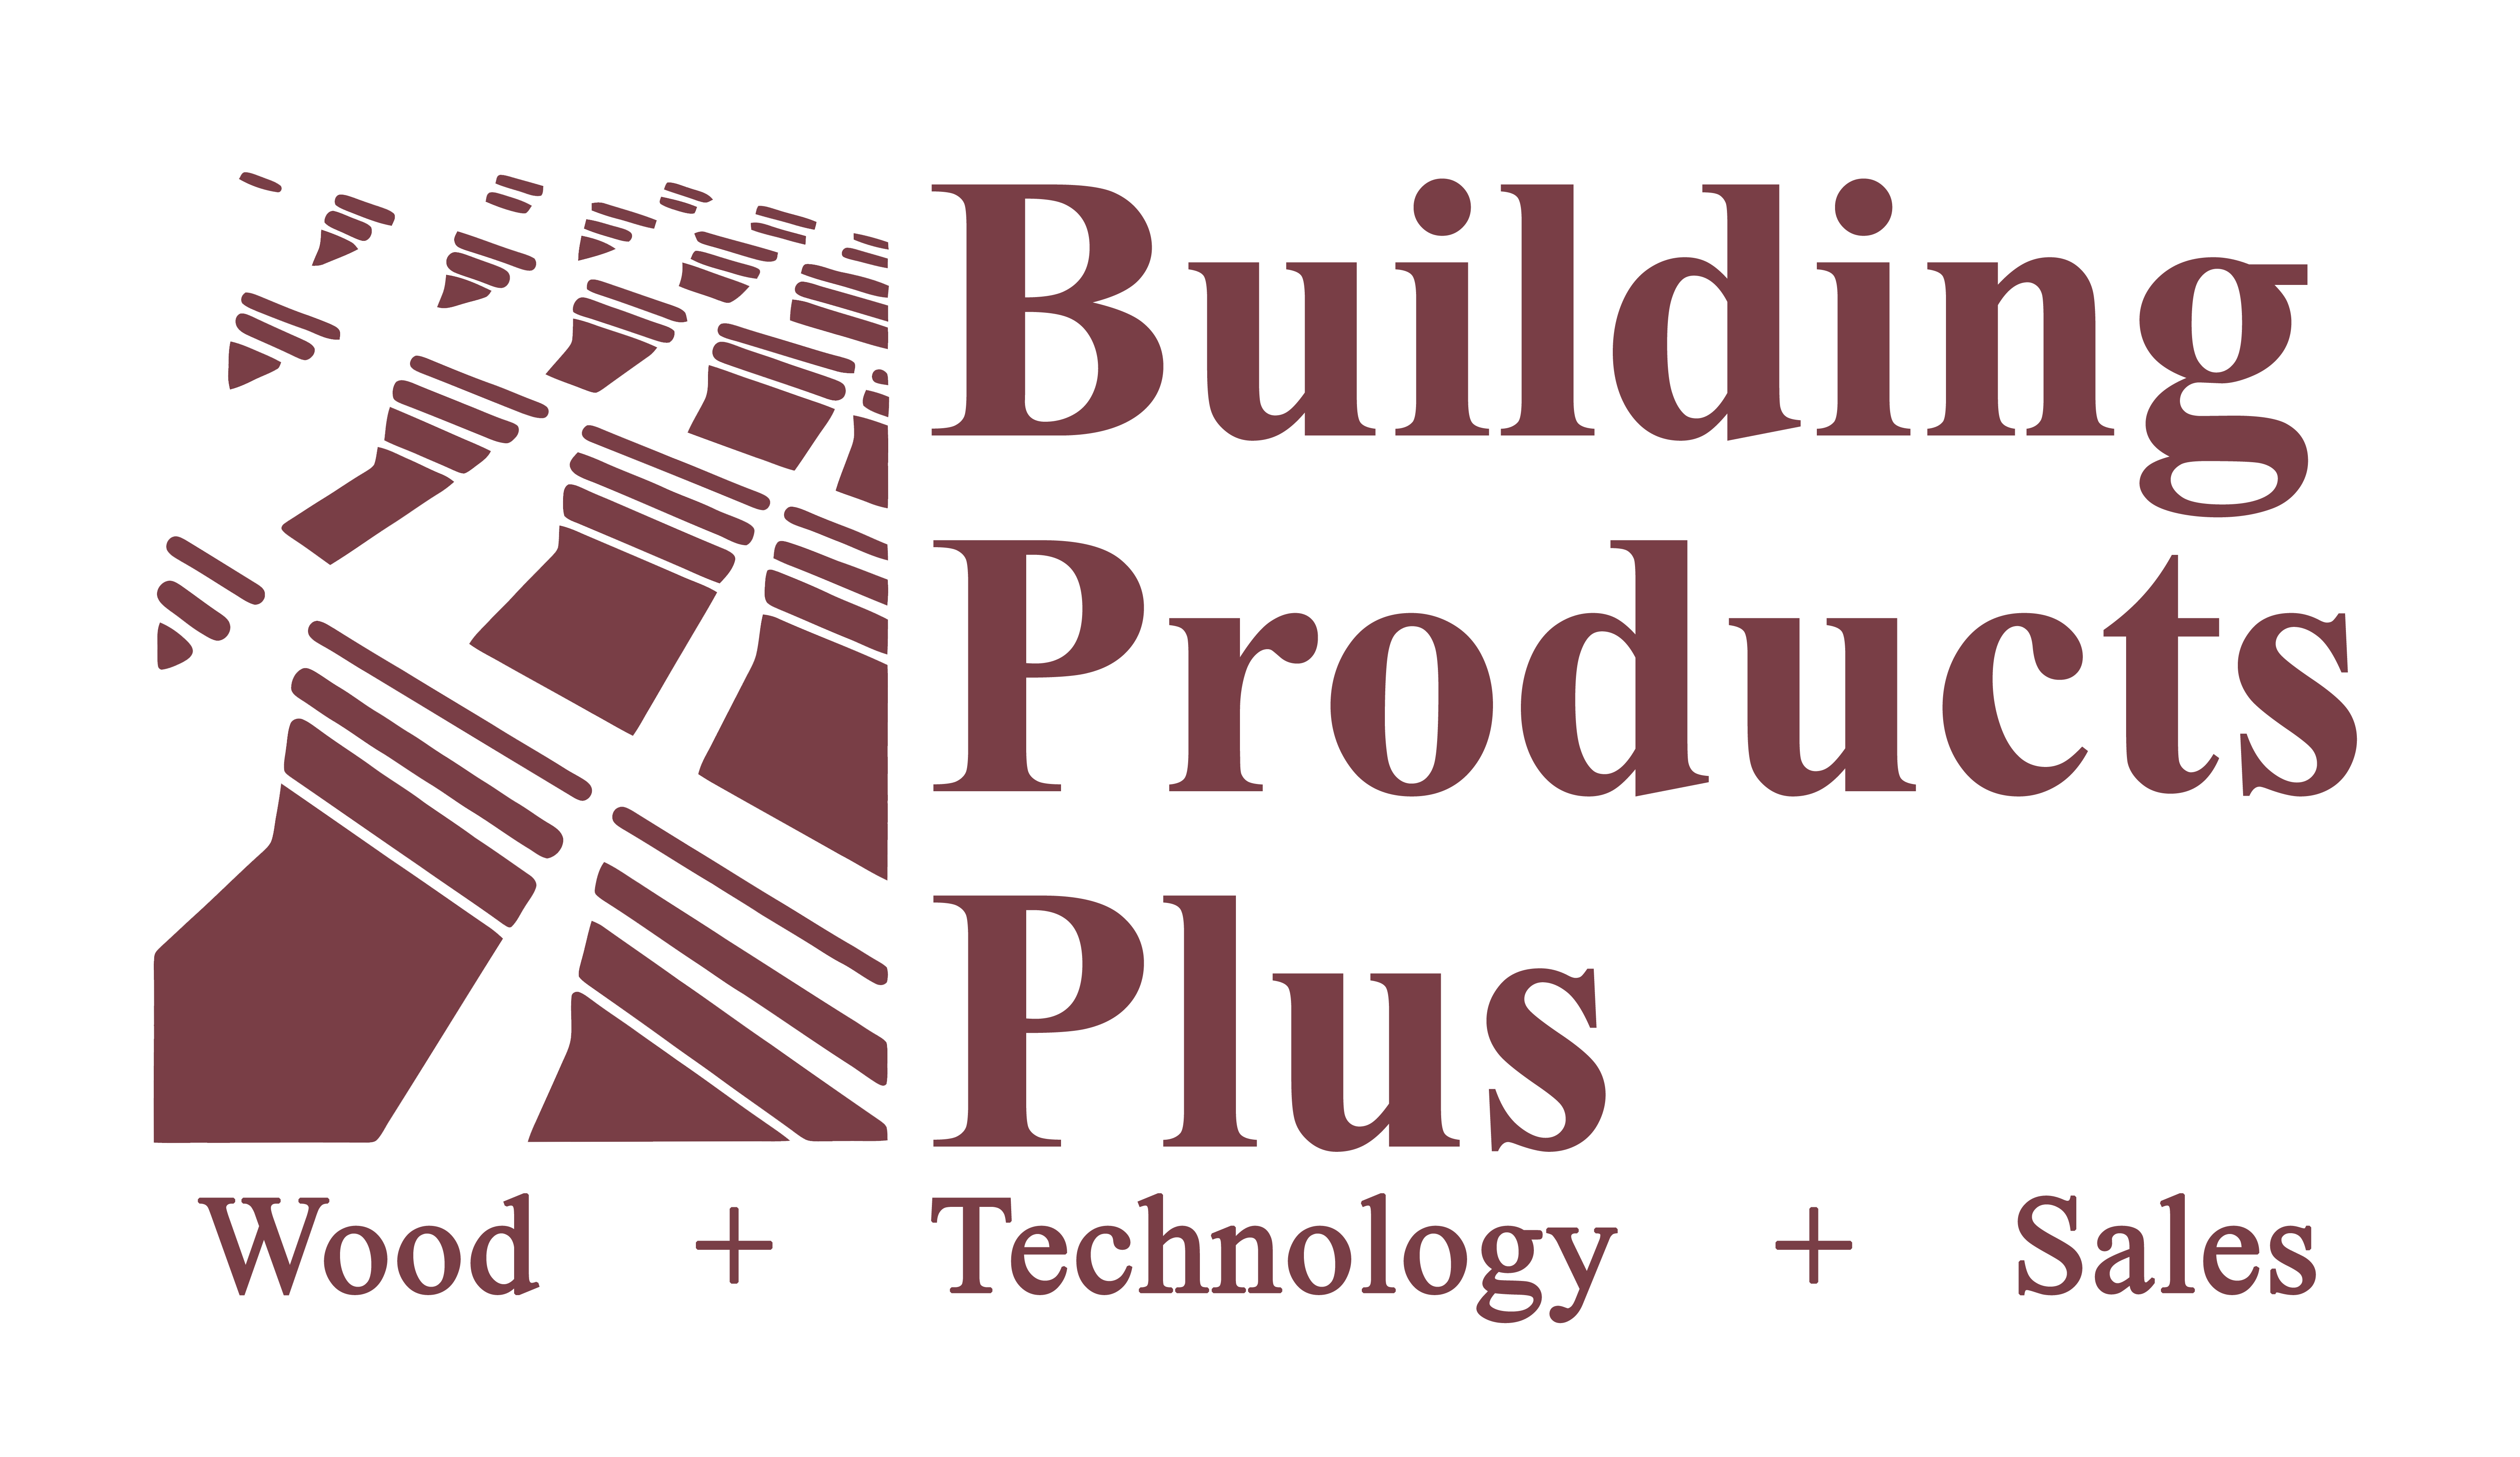 Floating Dock Kits in Texas, Louisiana, and The Caribbean from Building Products Plus